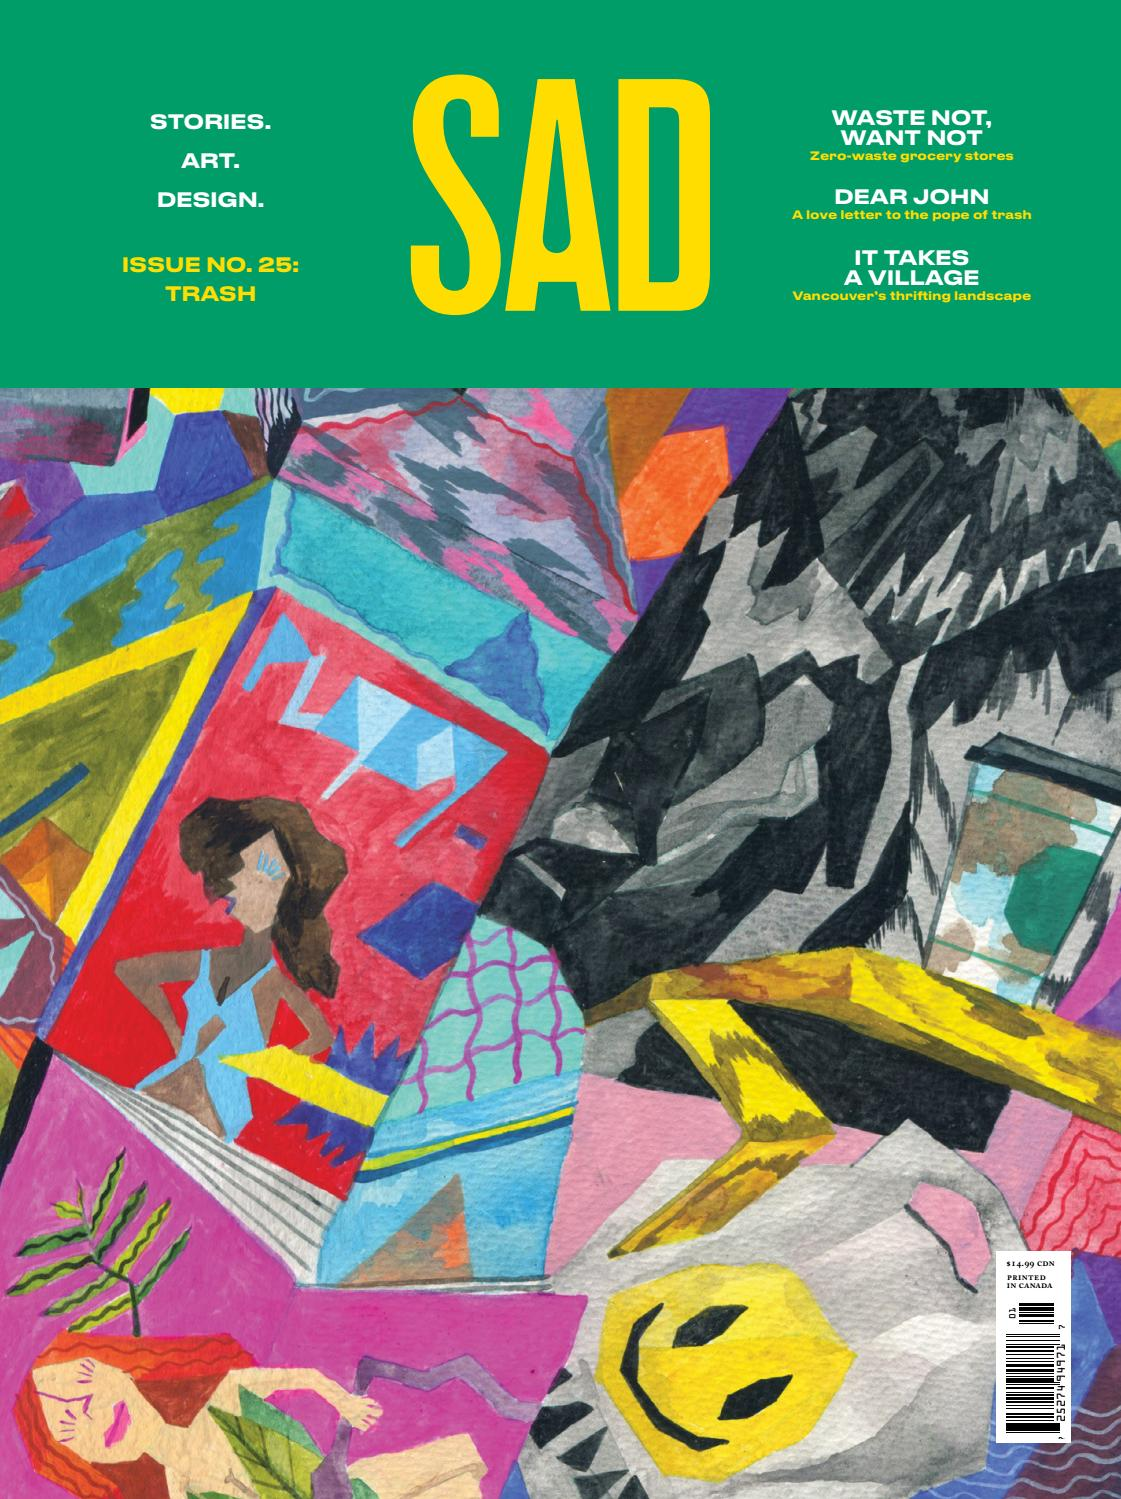 fdca6bdb36fc25 Trash: Issue No. 25 by SAD Mag - issuu